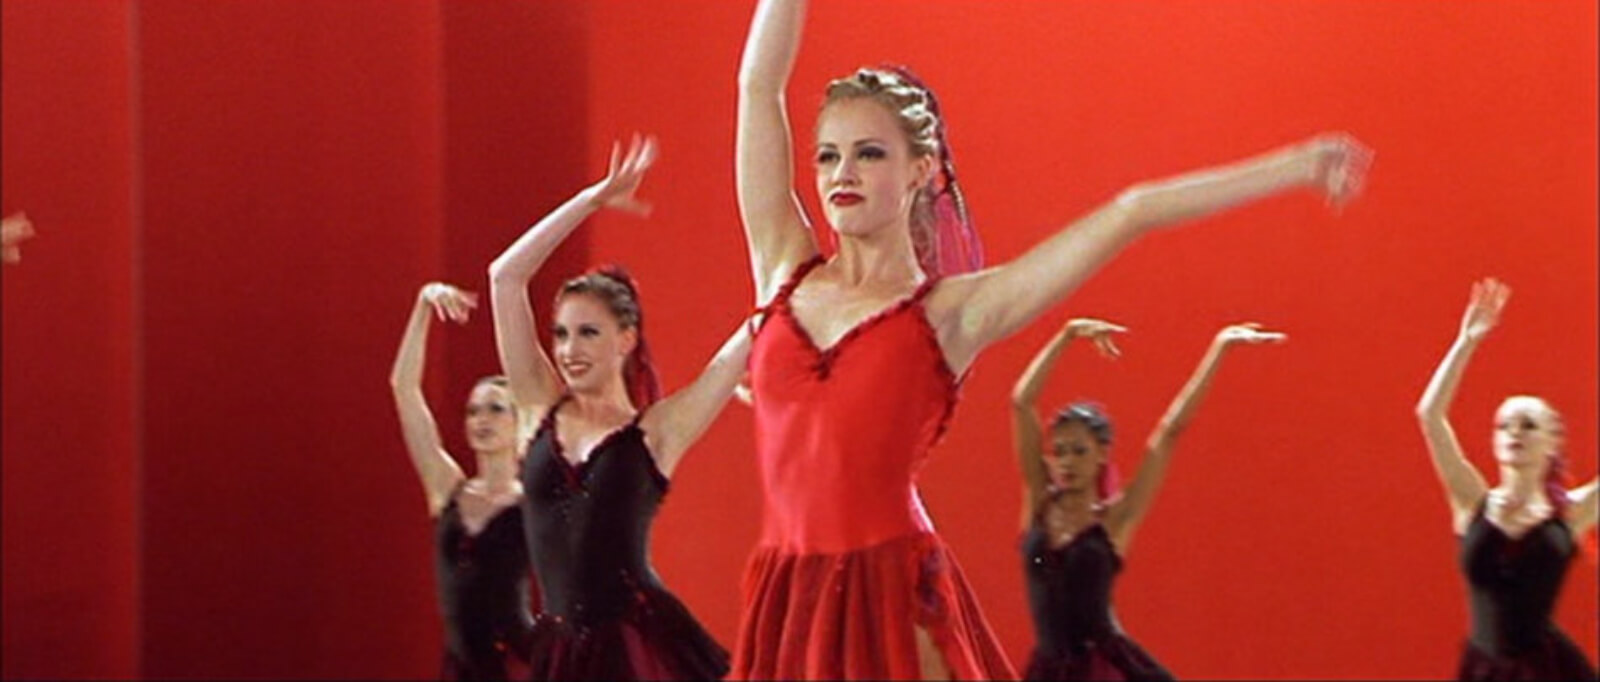 """A close up of Jody Sawyer (Amanda Schull) as she stands out in a red costume for """"Canned Heat"""" from Center Stage."""